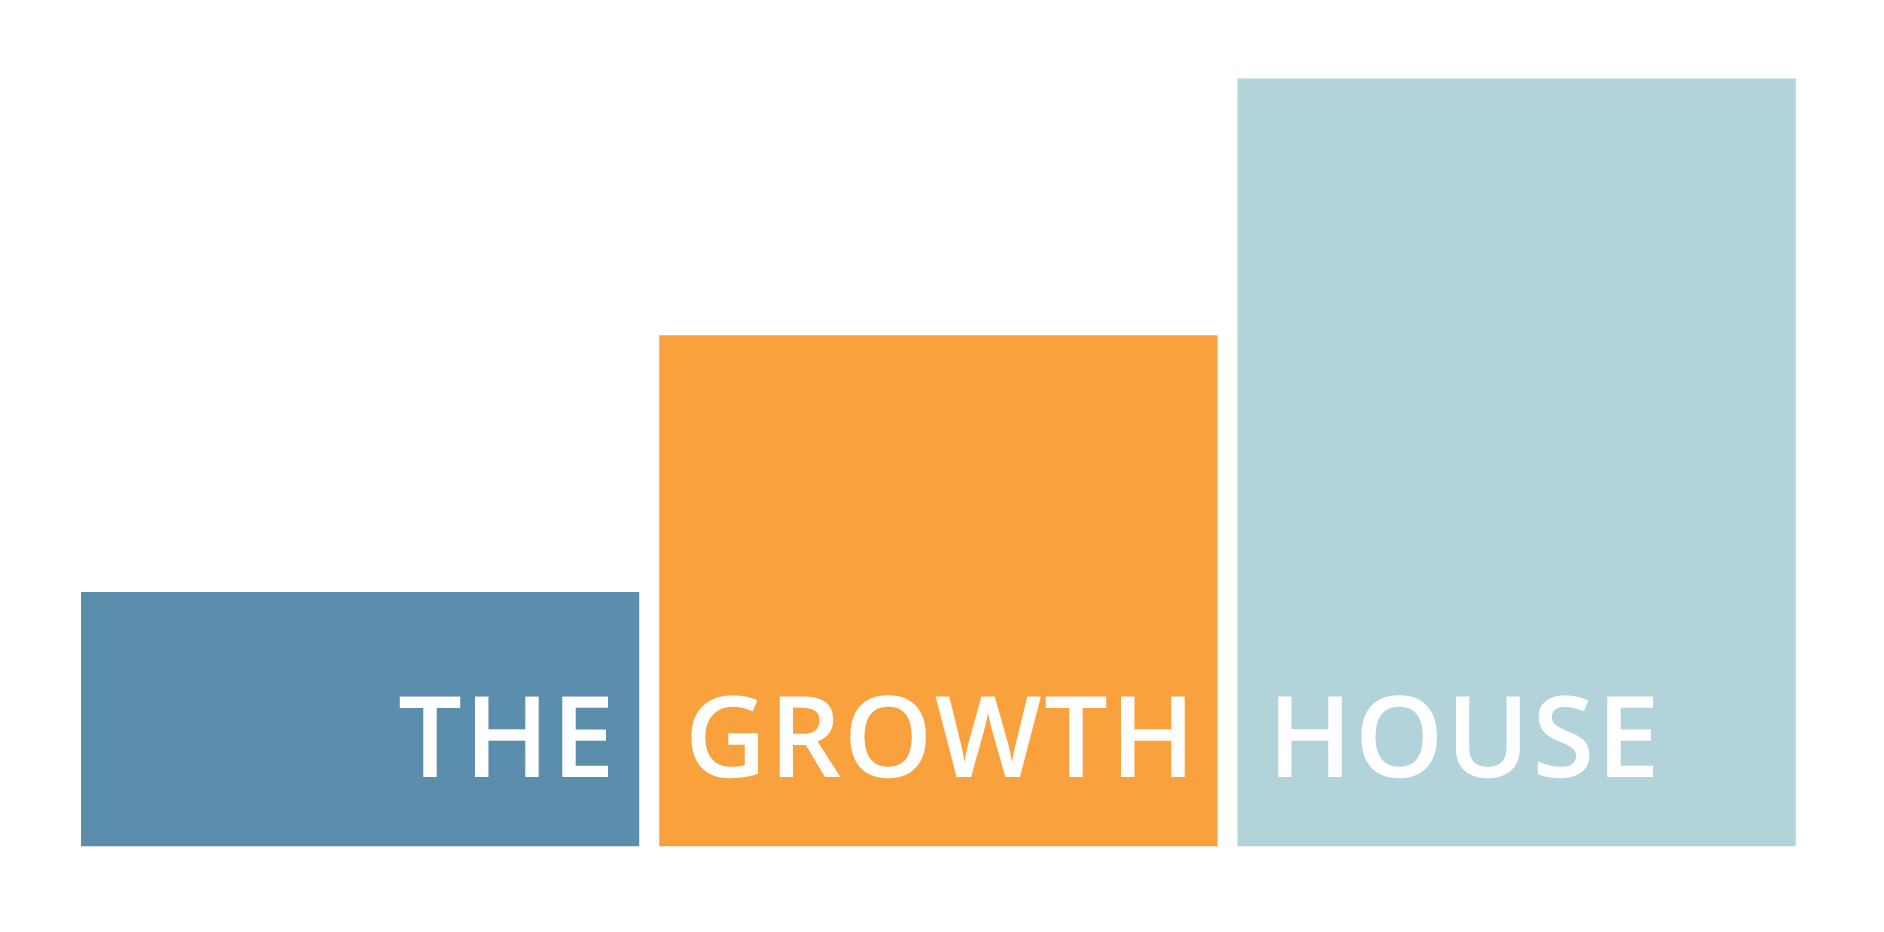 The Growth House